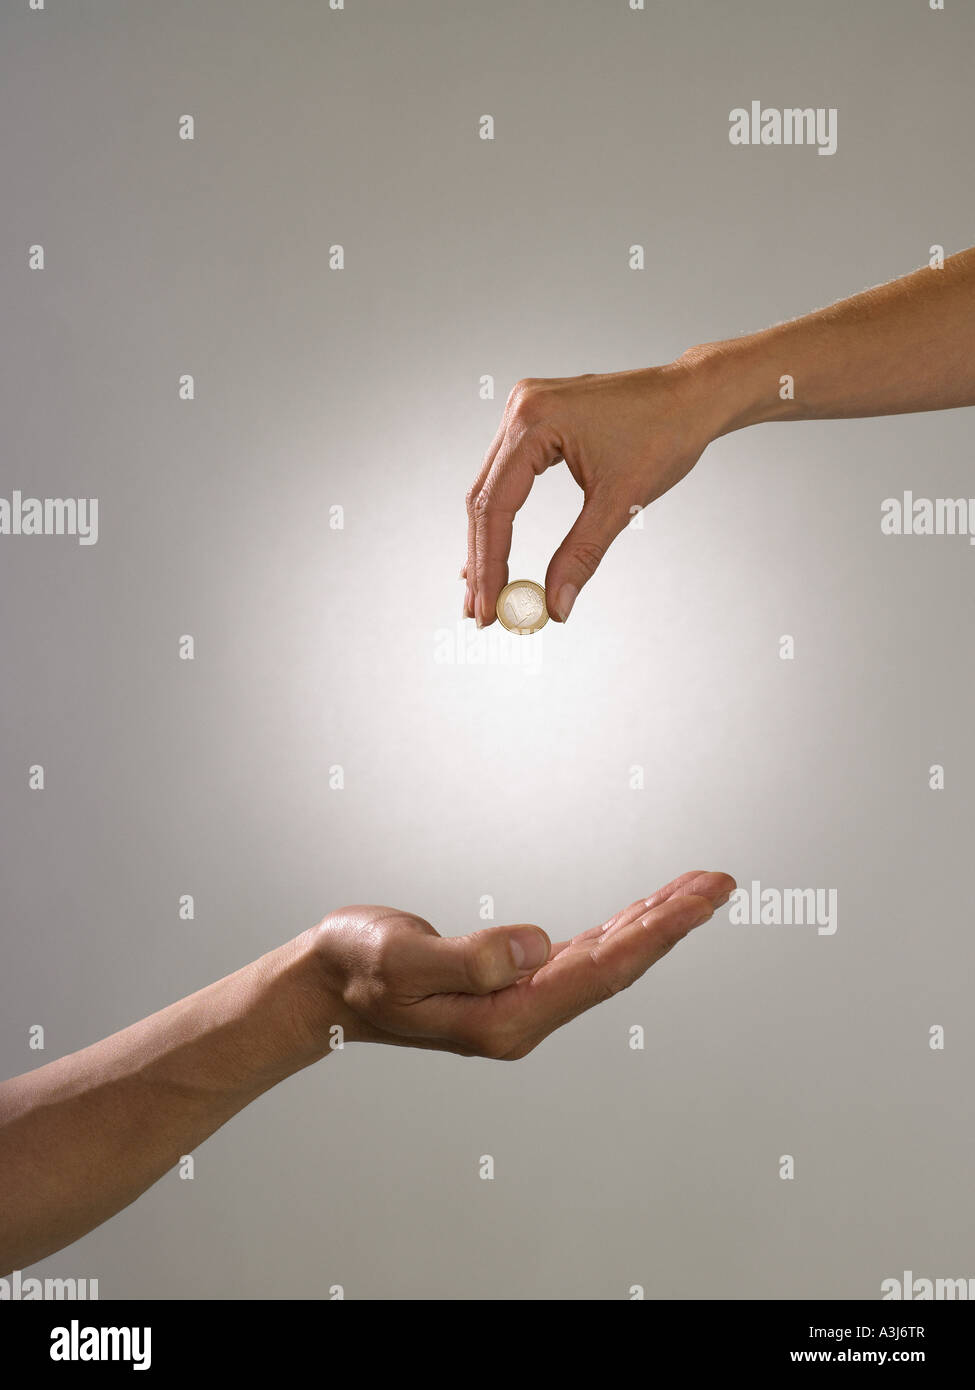 Woman holding coin above mans hand - Stock Image